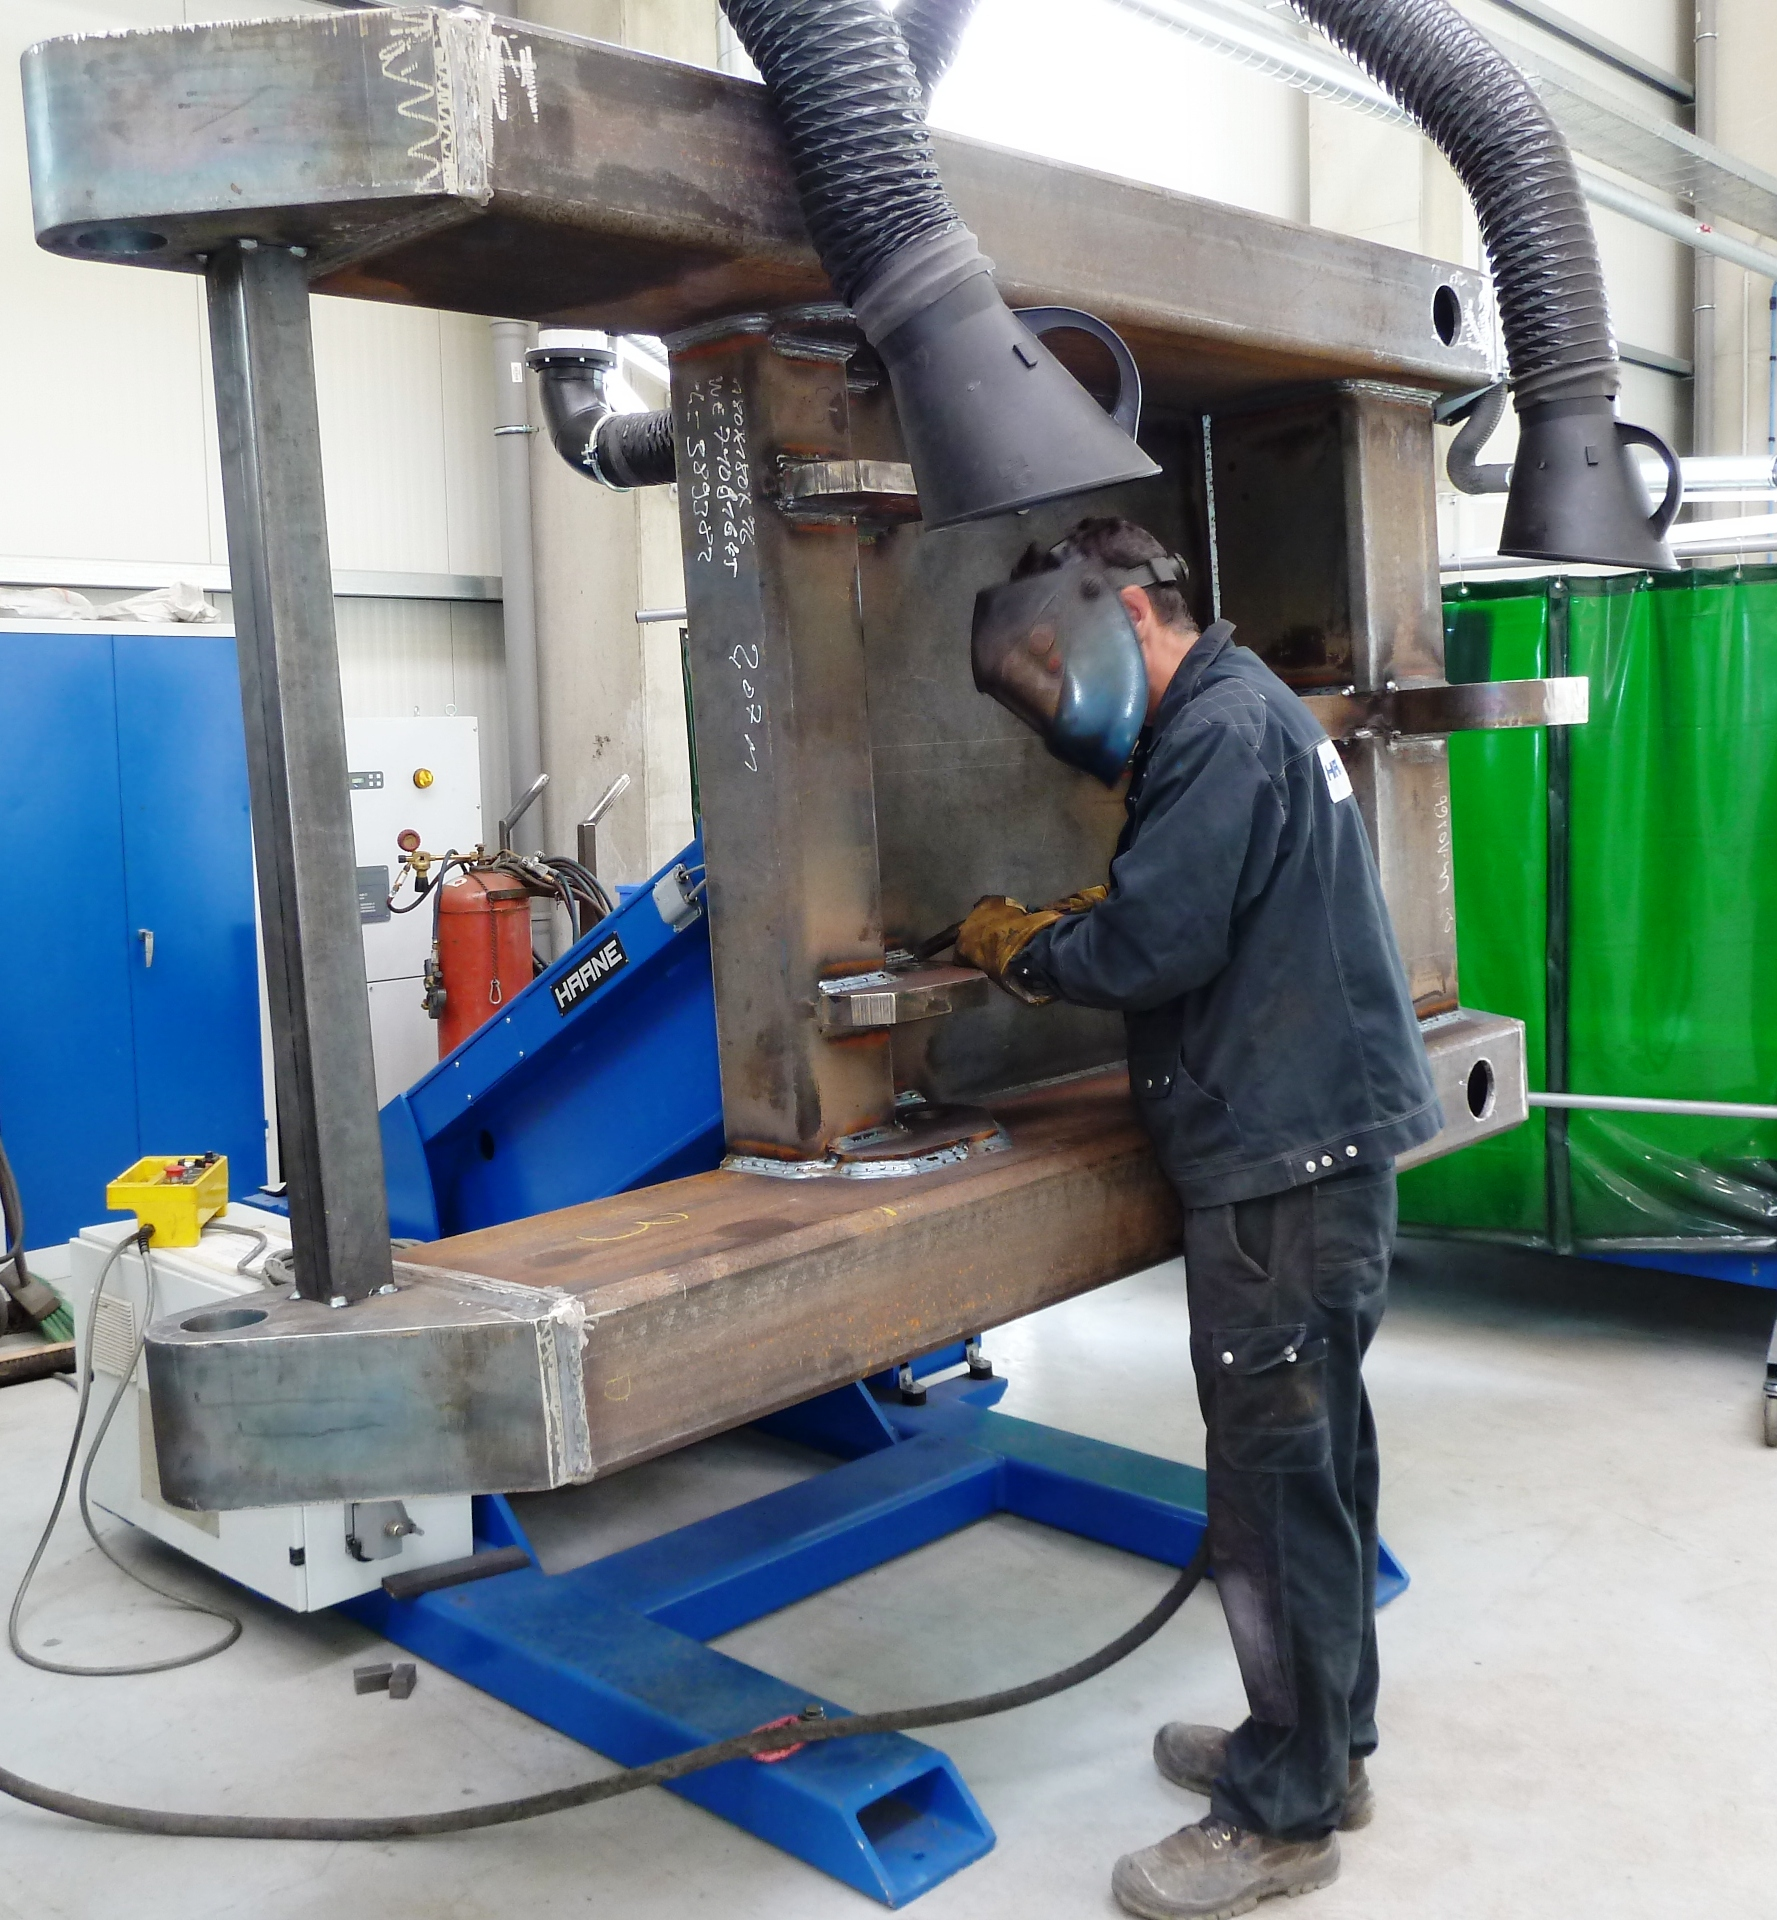 Welding in efficient and ergonomic position due to using a positioner